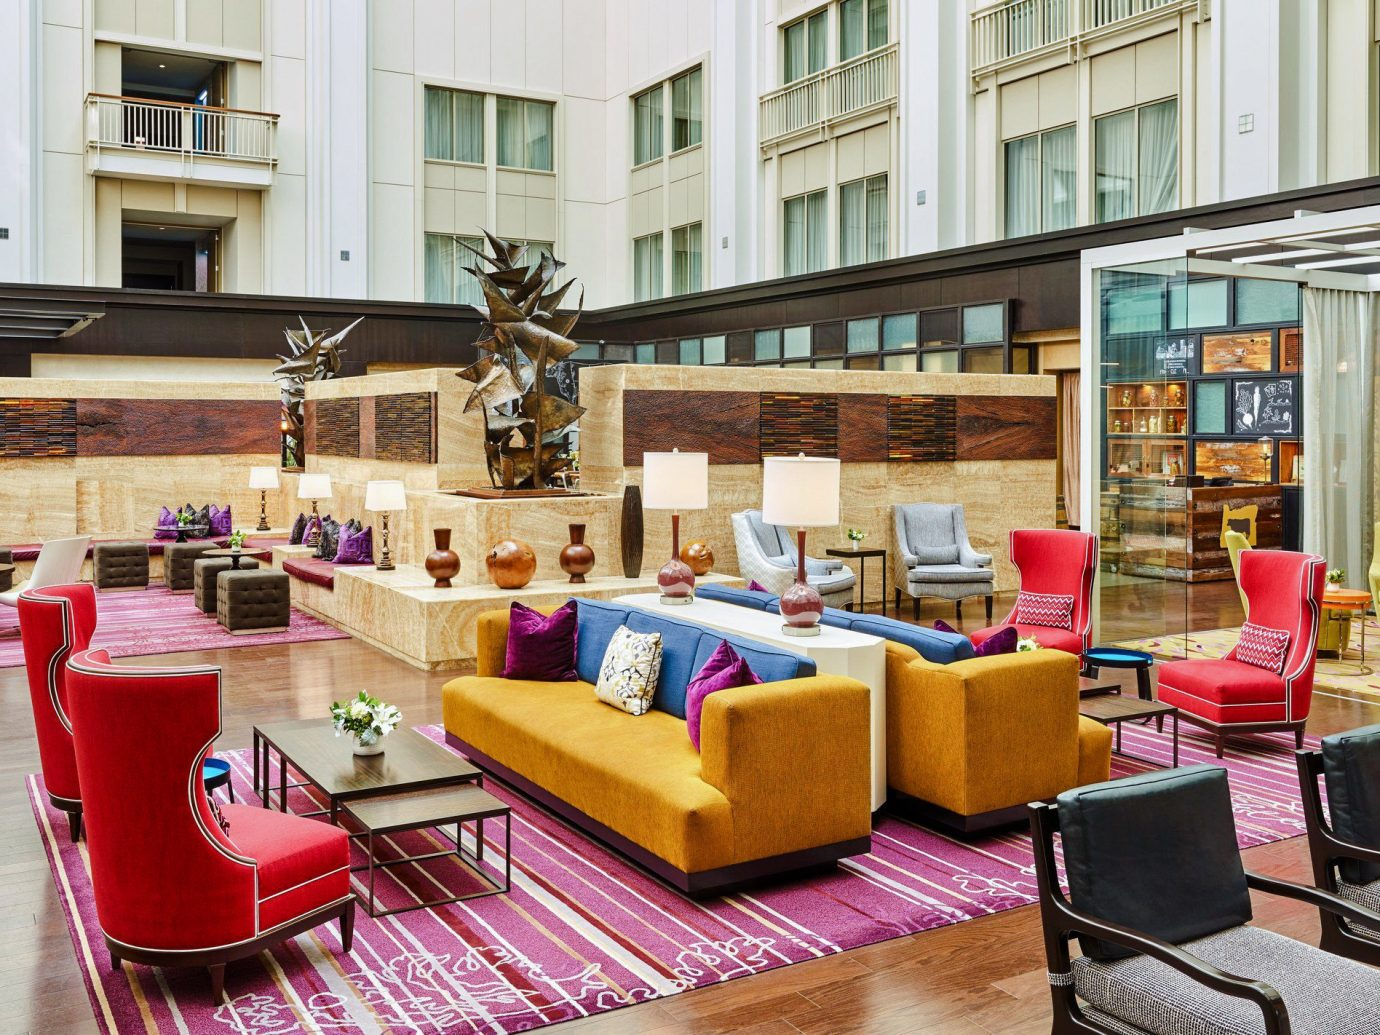 Boutique Hotels Food + Drink Hotels Luxury Travel Style + Design Trip Ideas Weekend Getaways building living room interior design furniture Lobby loft